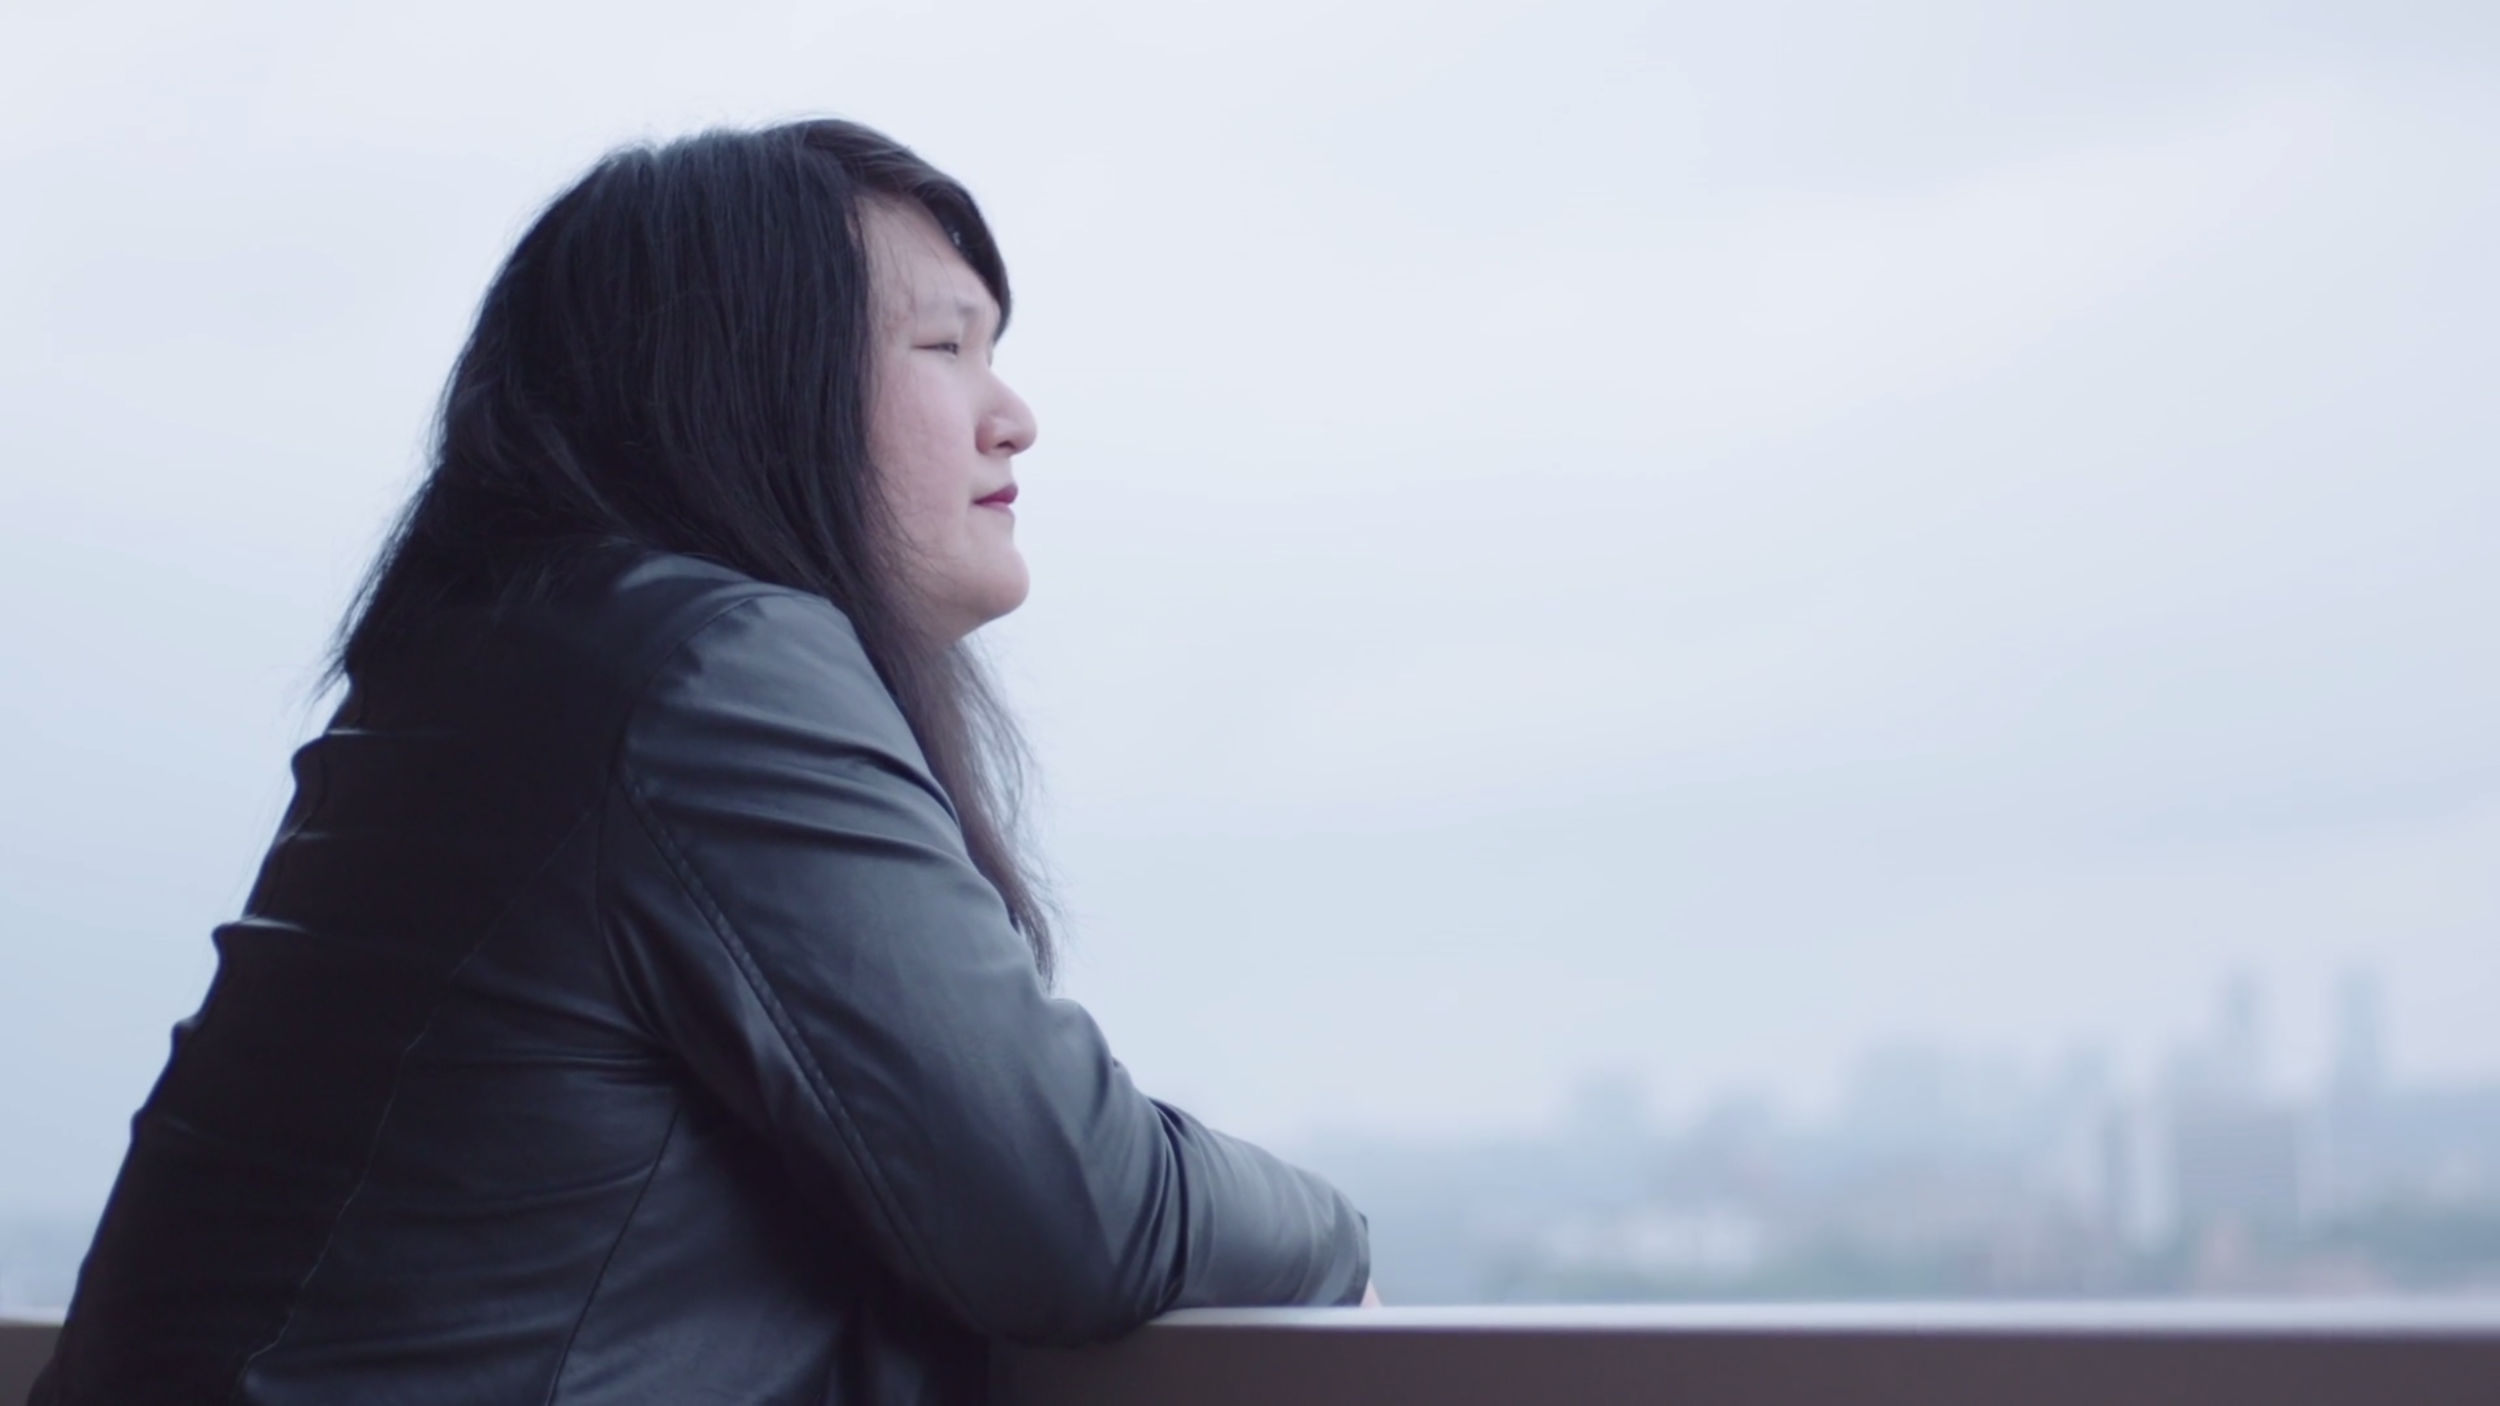 Still from  Always Love featuring Joanna Fang produced by WeWork.